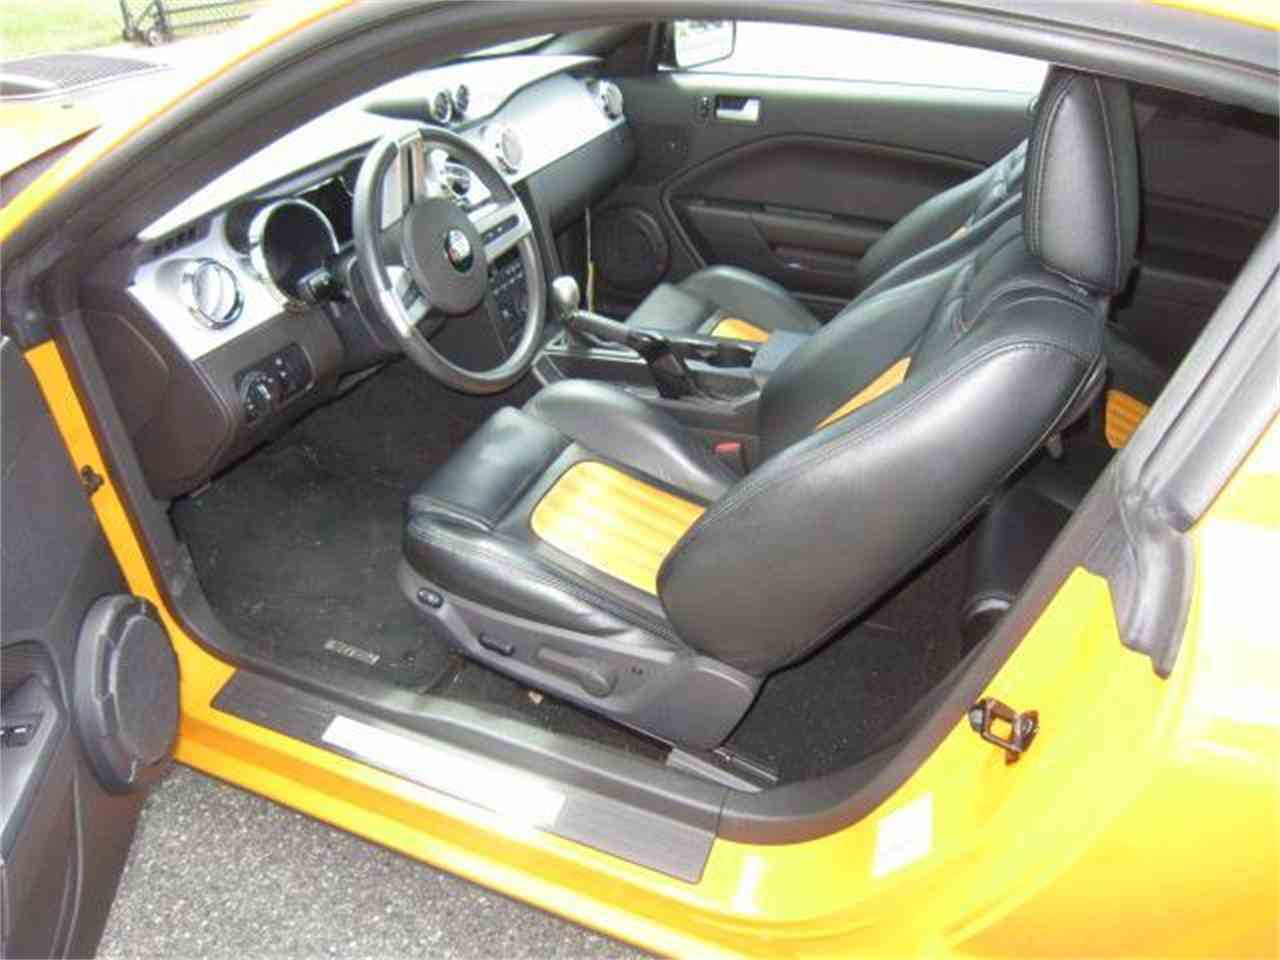 Large Picture of 2007 Ford / Salene Mustang Parnelli Jones located in Tifton Georgia Offered by Auto Quest Investment Cars - JFG5